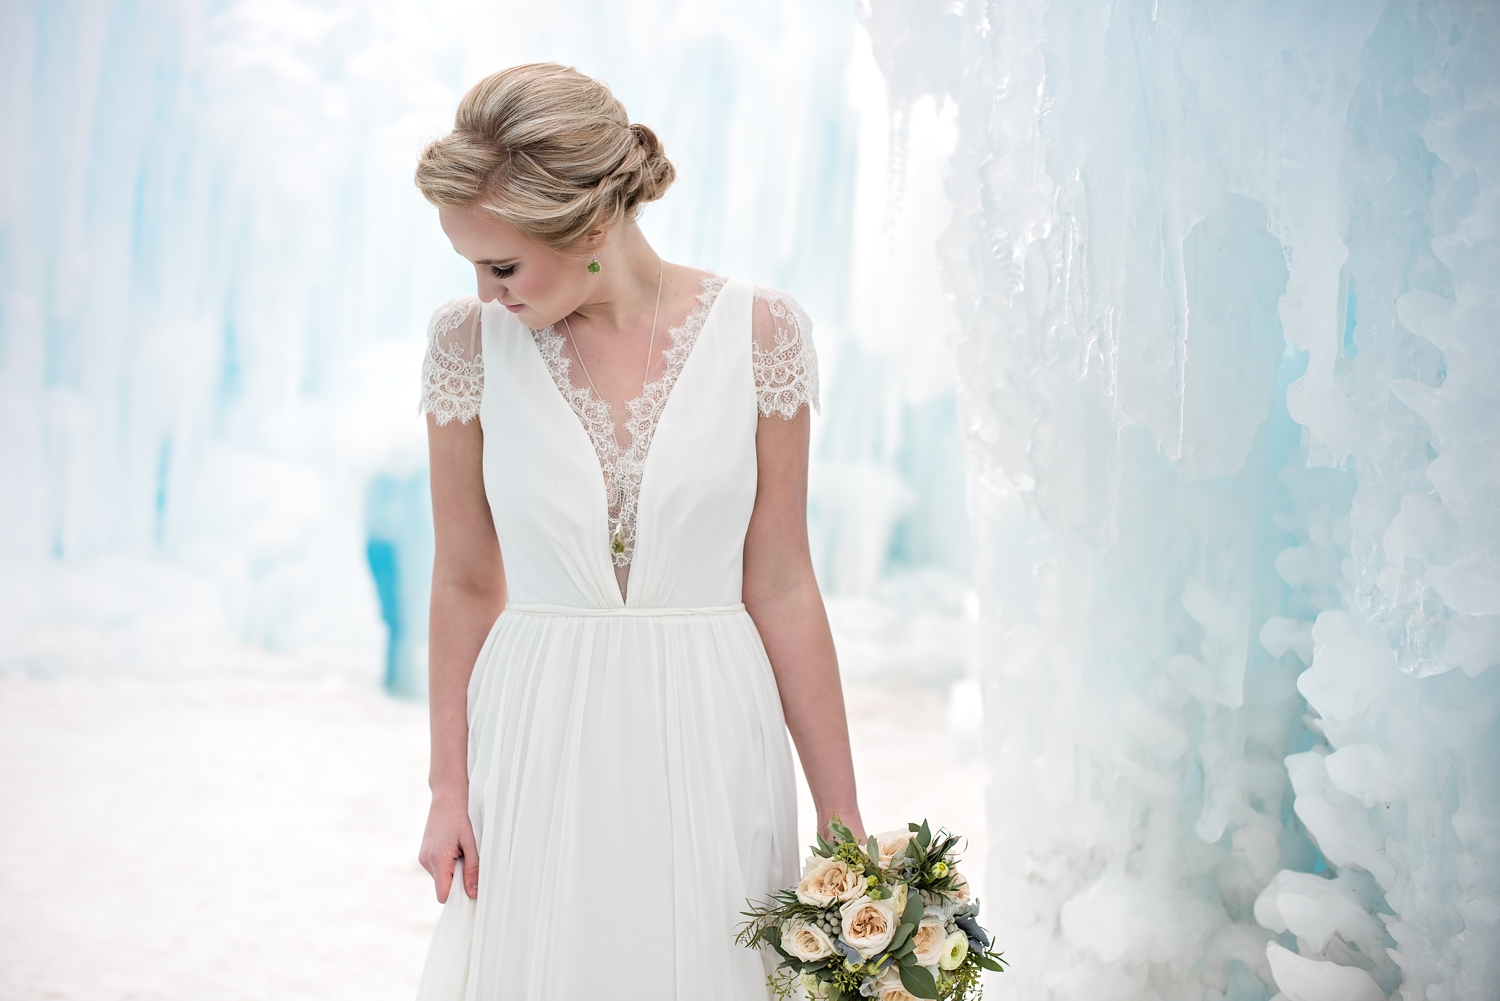 Bride wearing a Christos Bridal wedding dress standing in an ice castle